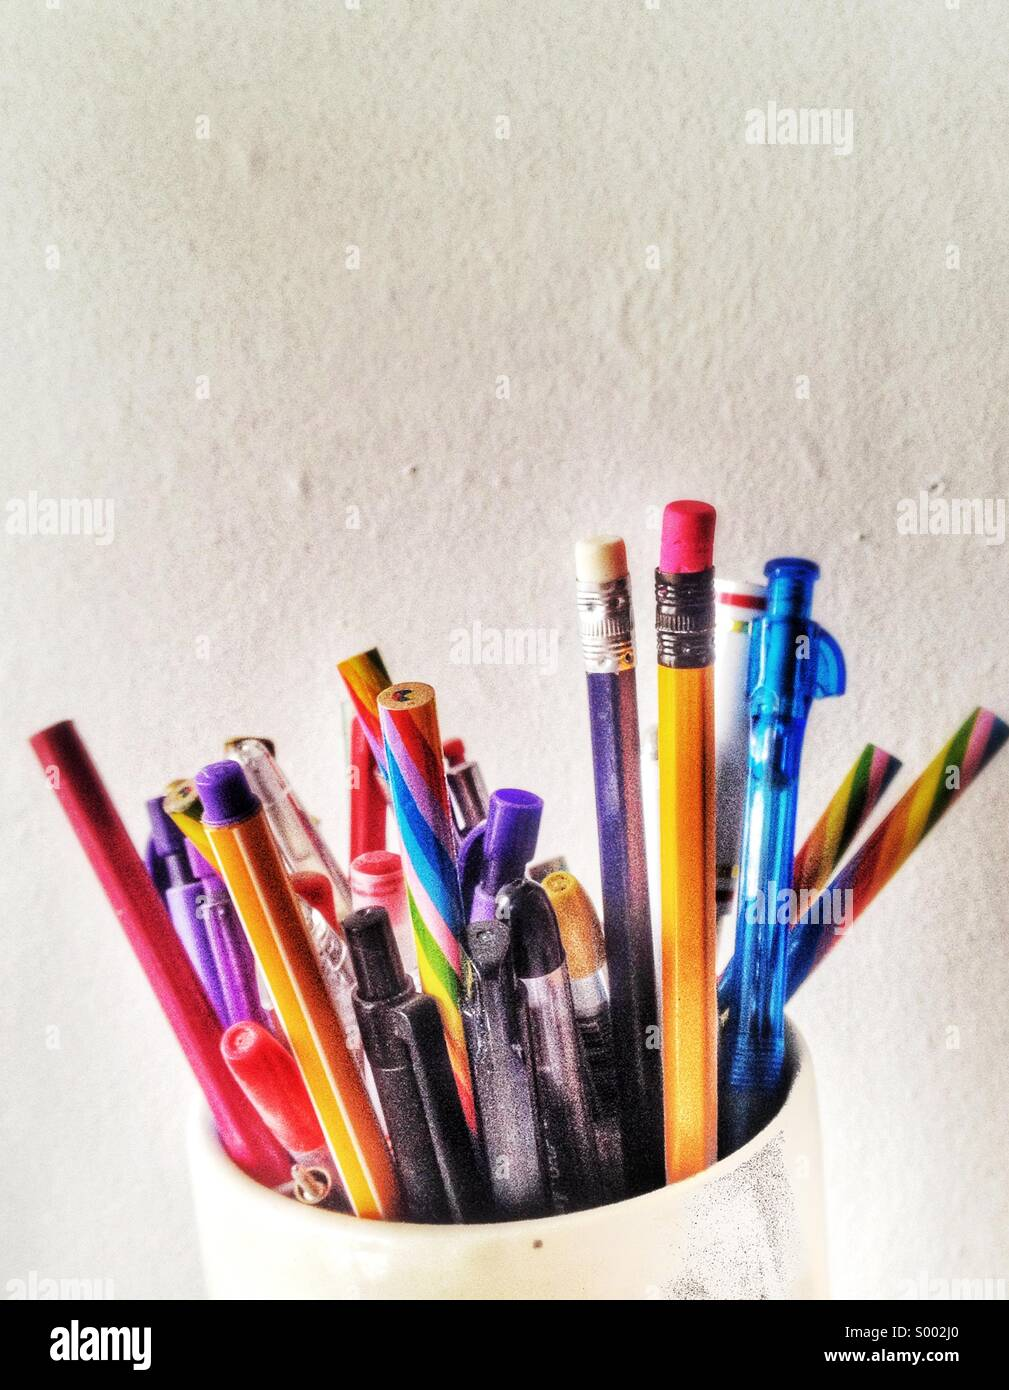 Colorful pens in jug - Stock Image